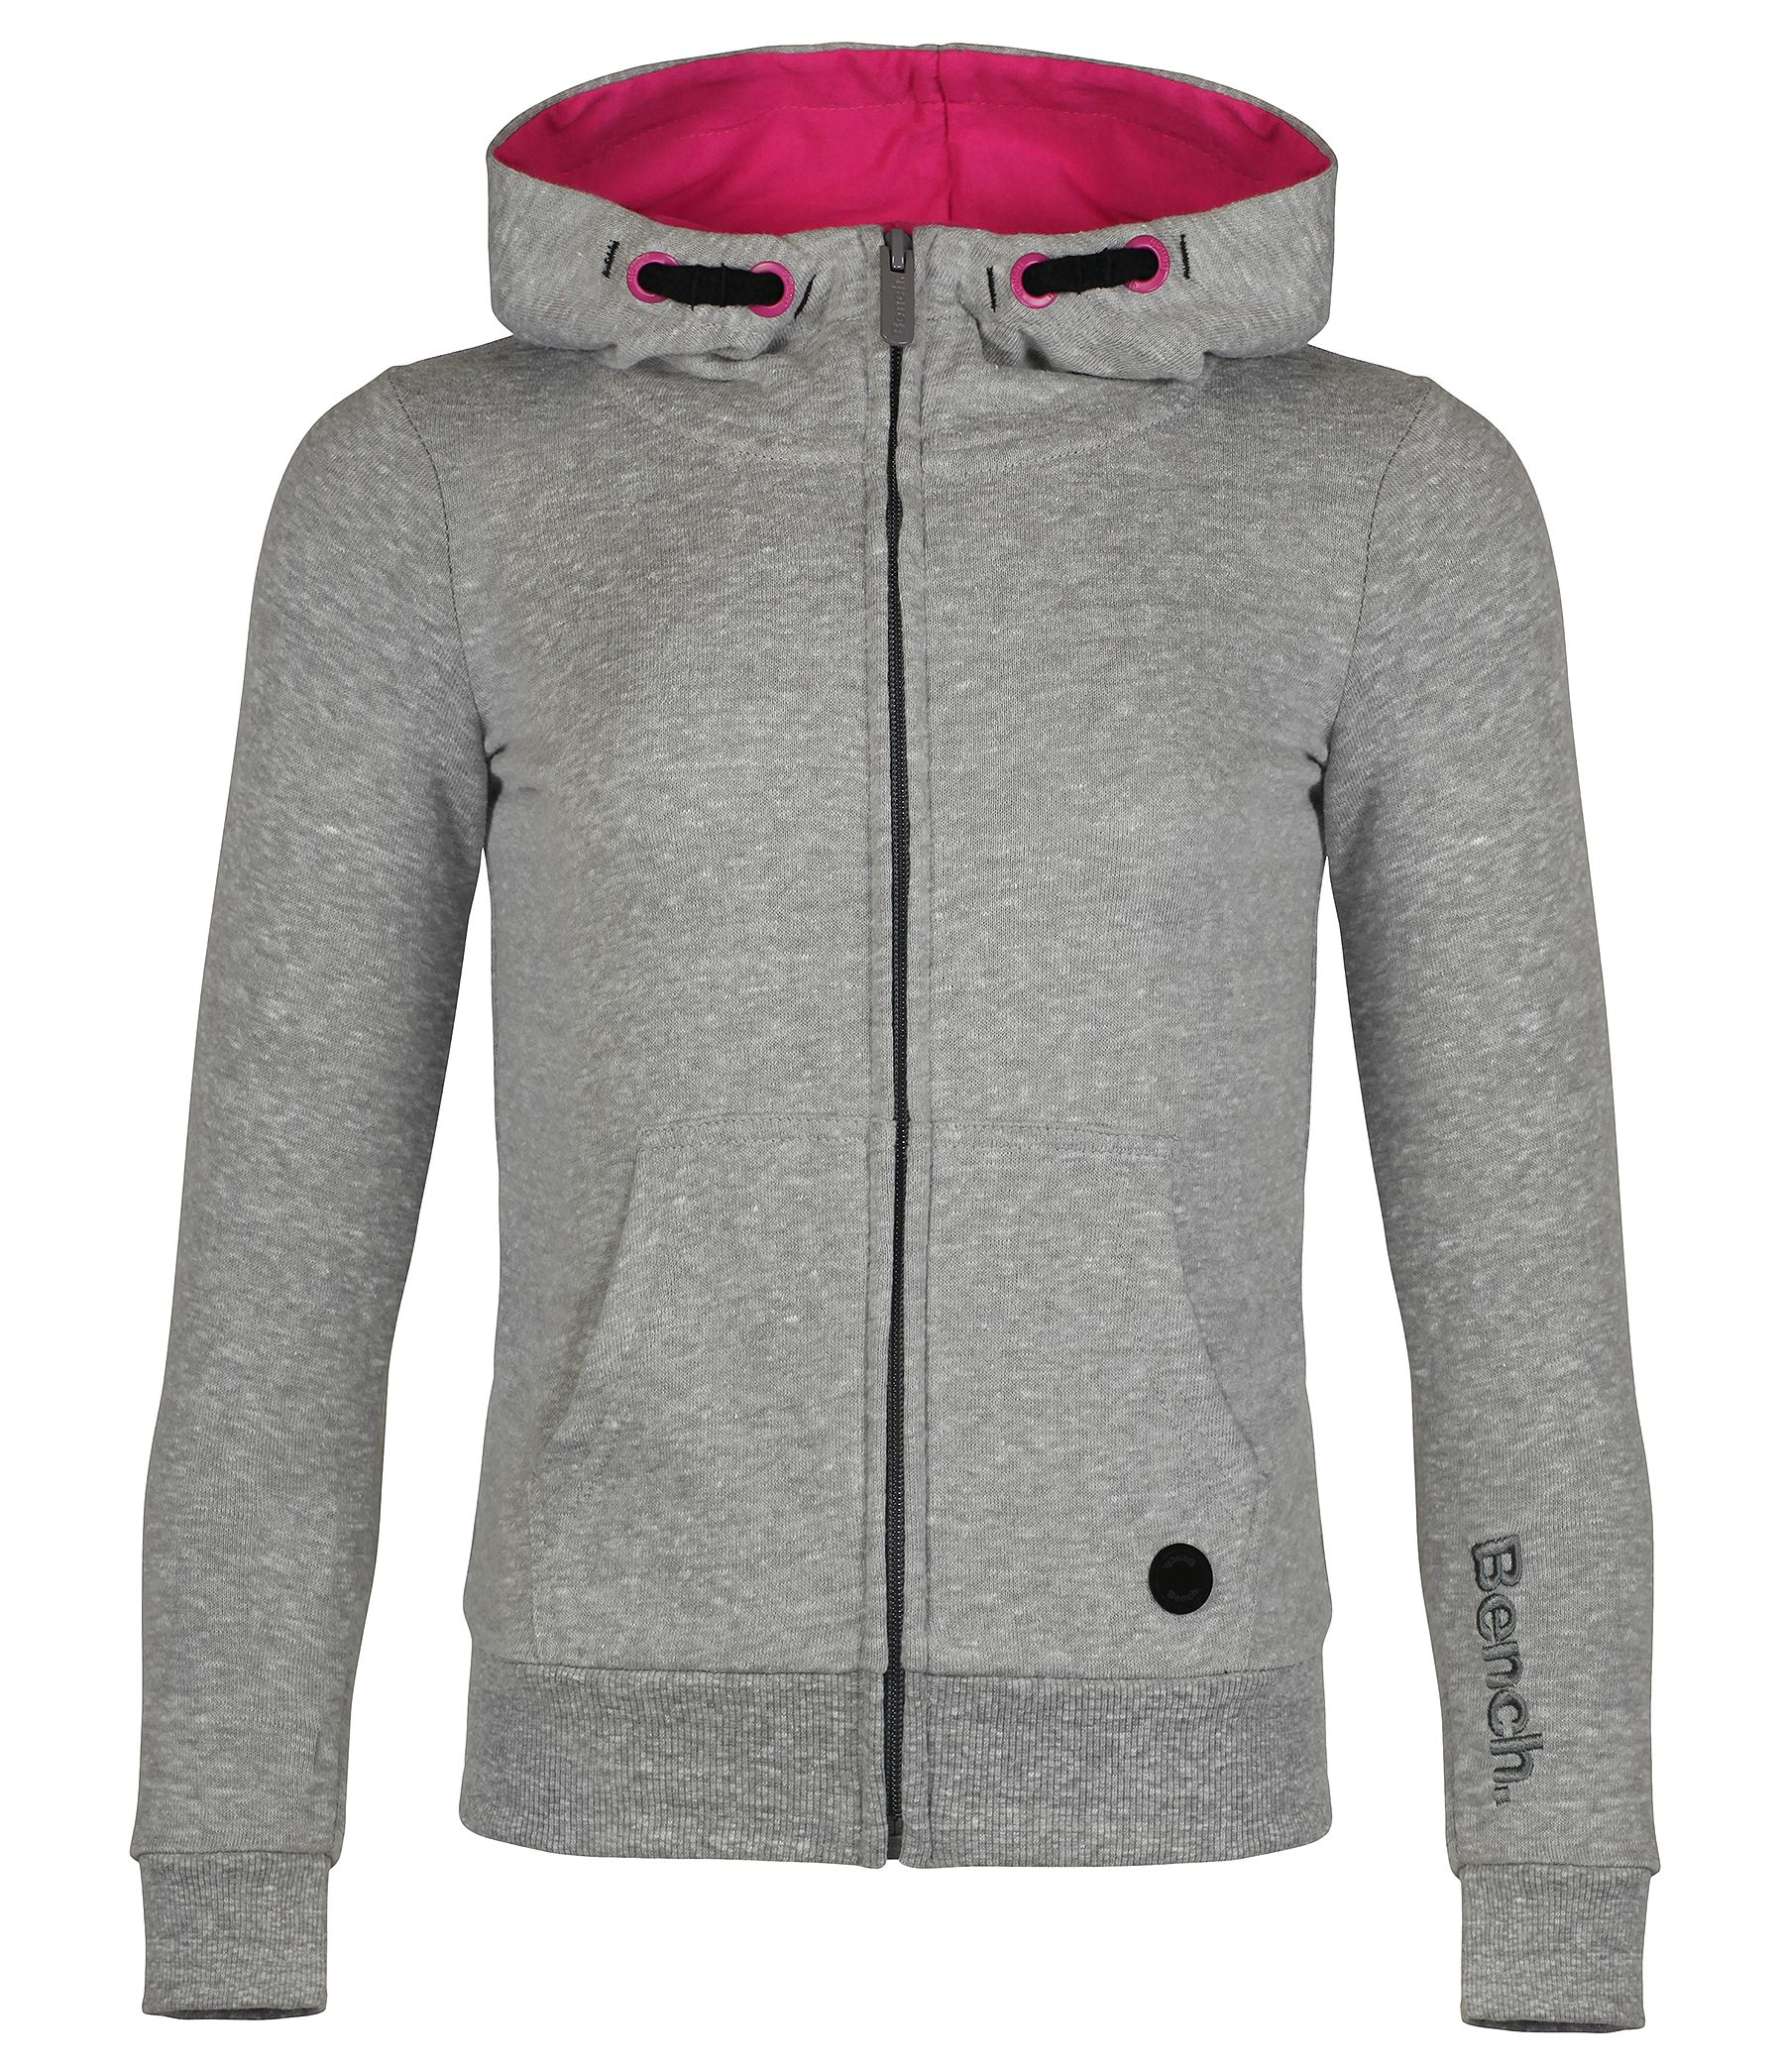 Girls lowcloud hooded zip up sweatshirt